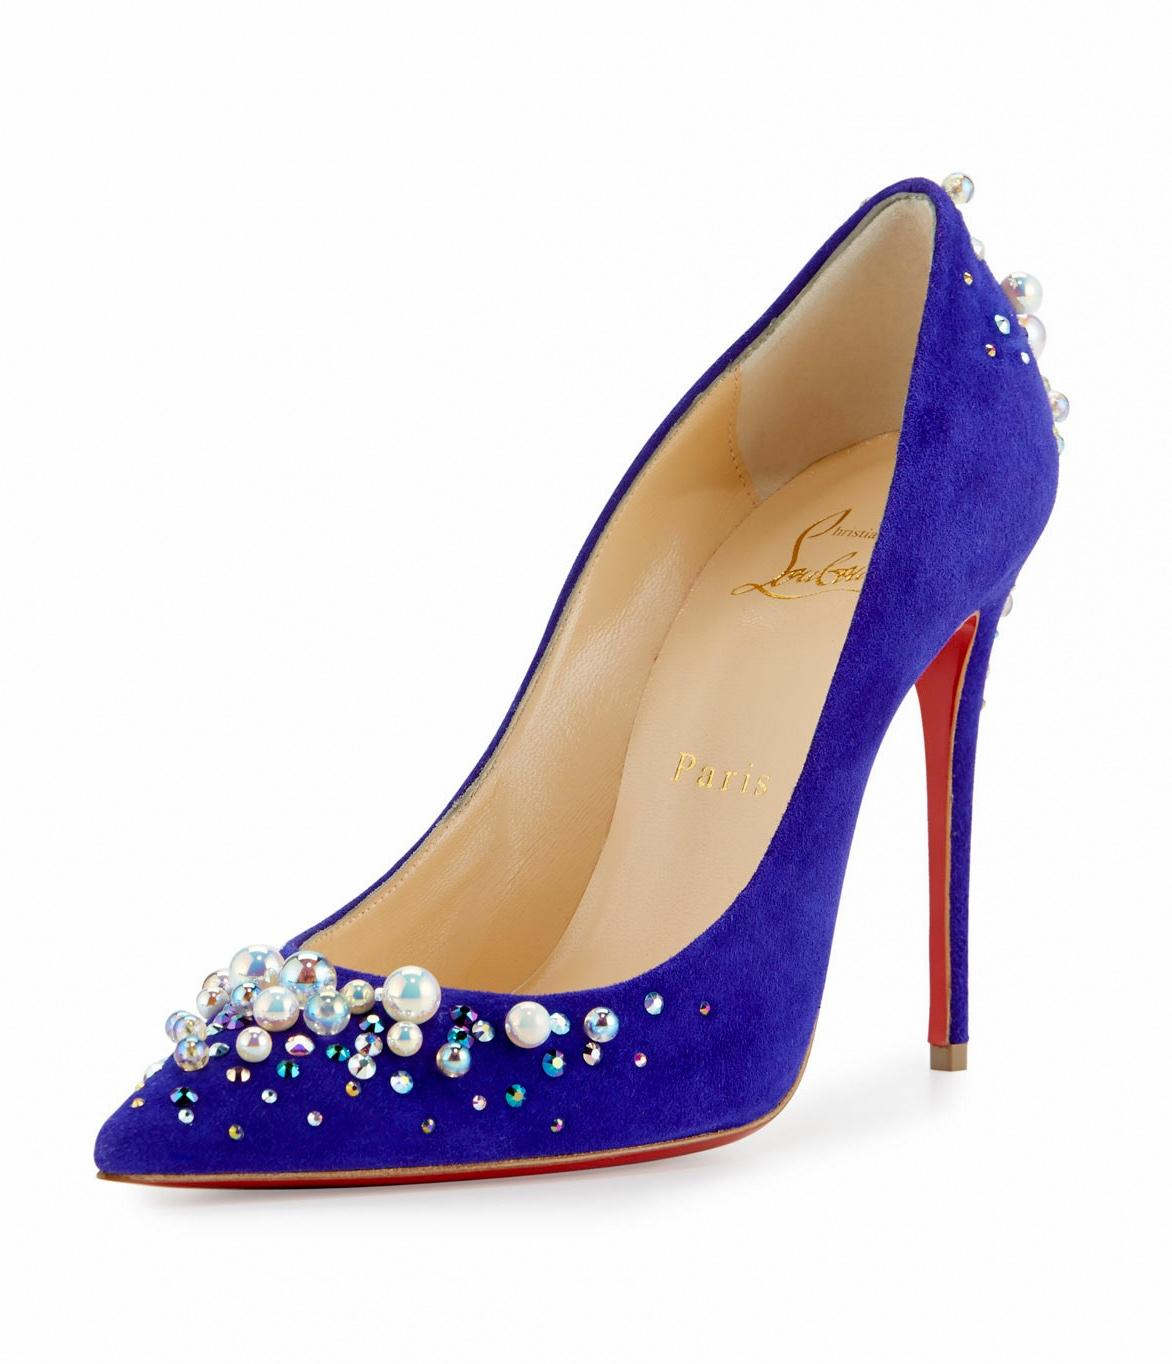 Christian Louboutin Blue Candidate Purple Pop Pearly-embellished Suede Red Sole Pumps Size EU 39 (Approx. US 9) Regular (M, B)